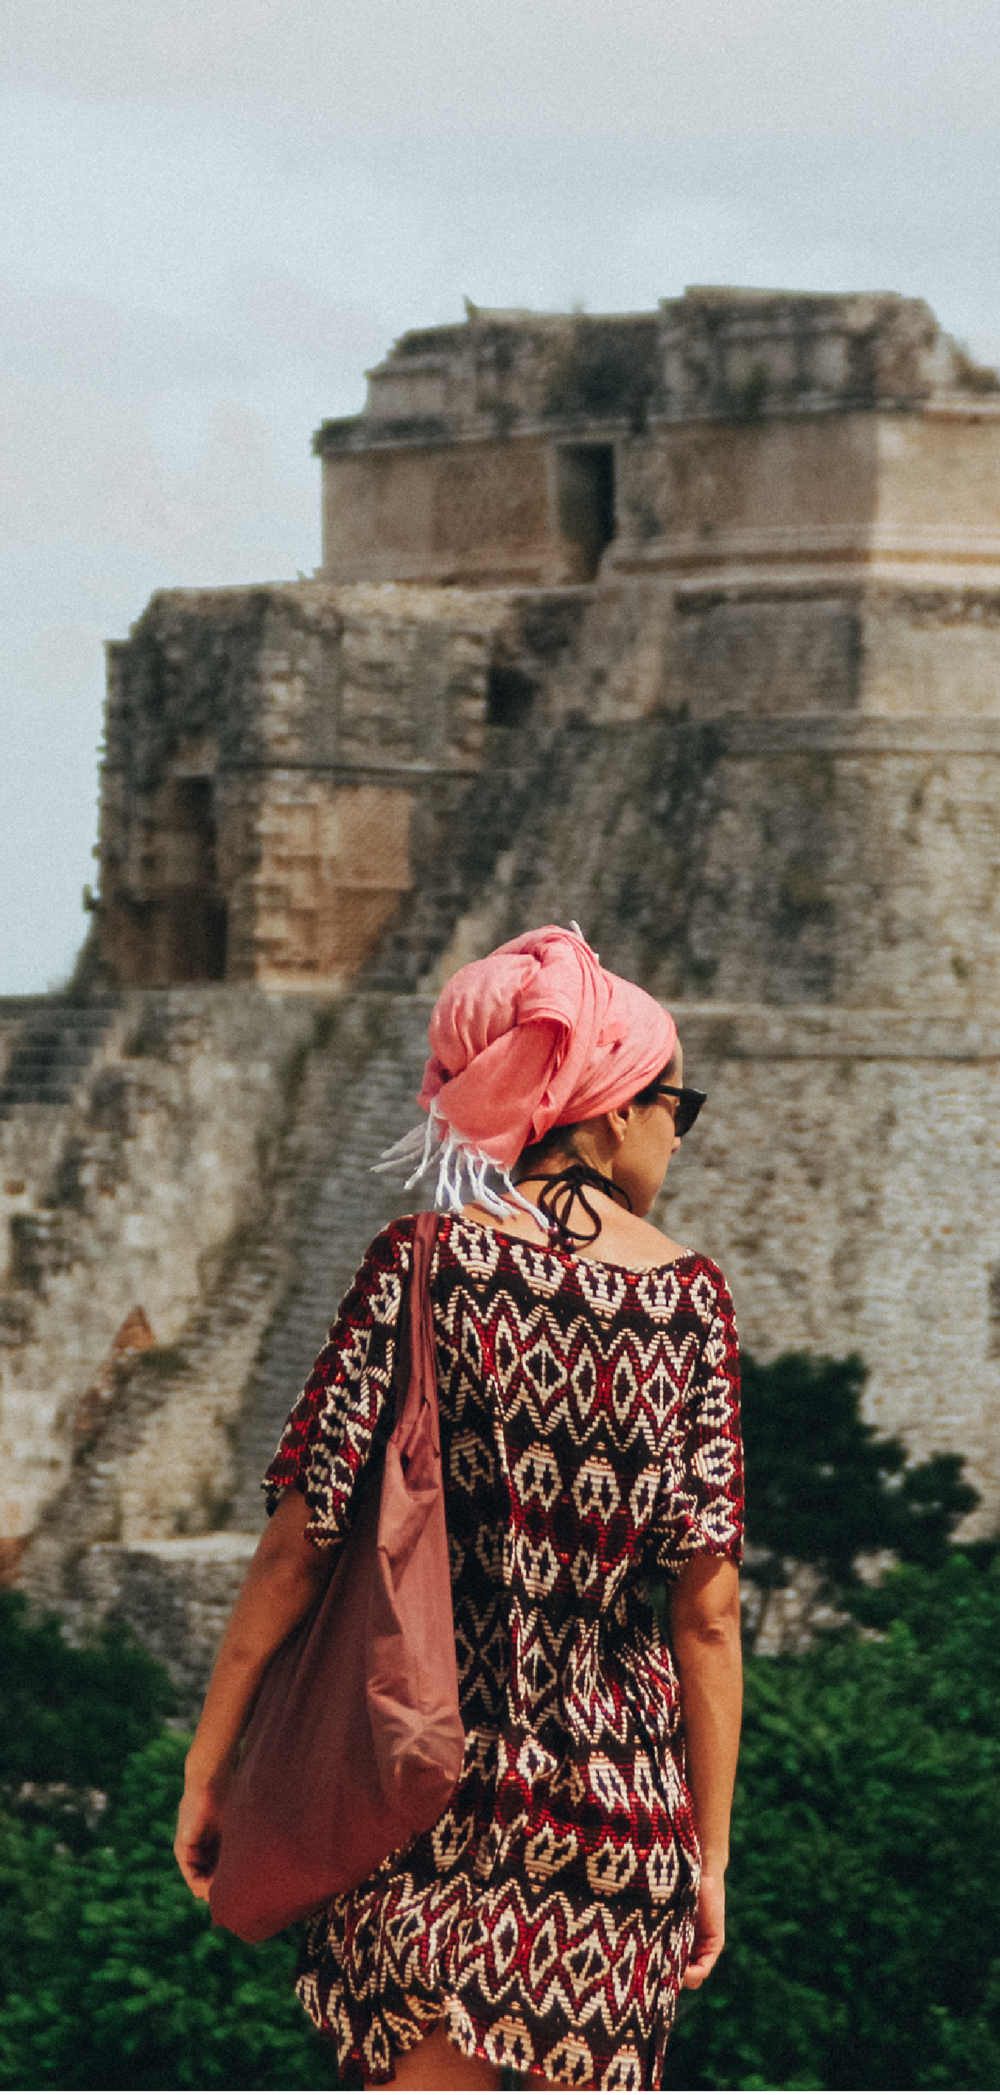 Uxmal - Mexico Tropical® travel agency